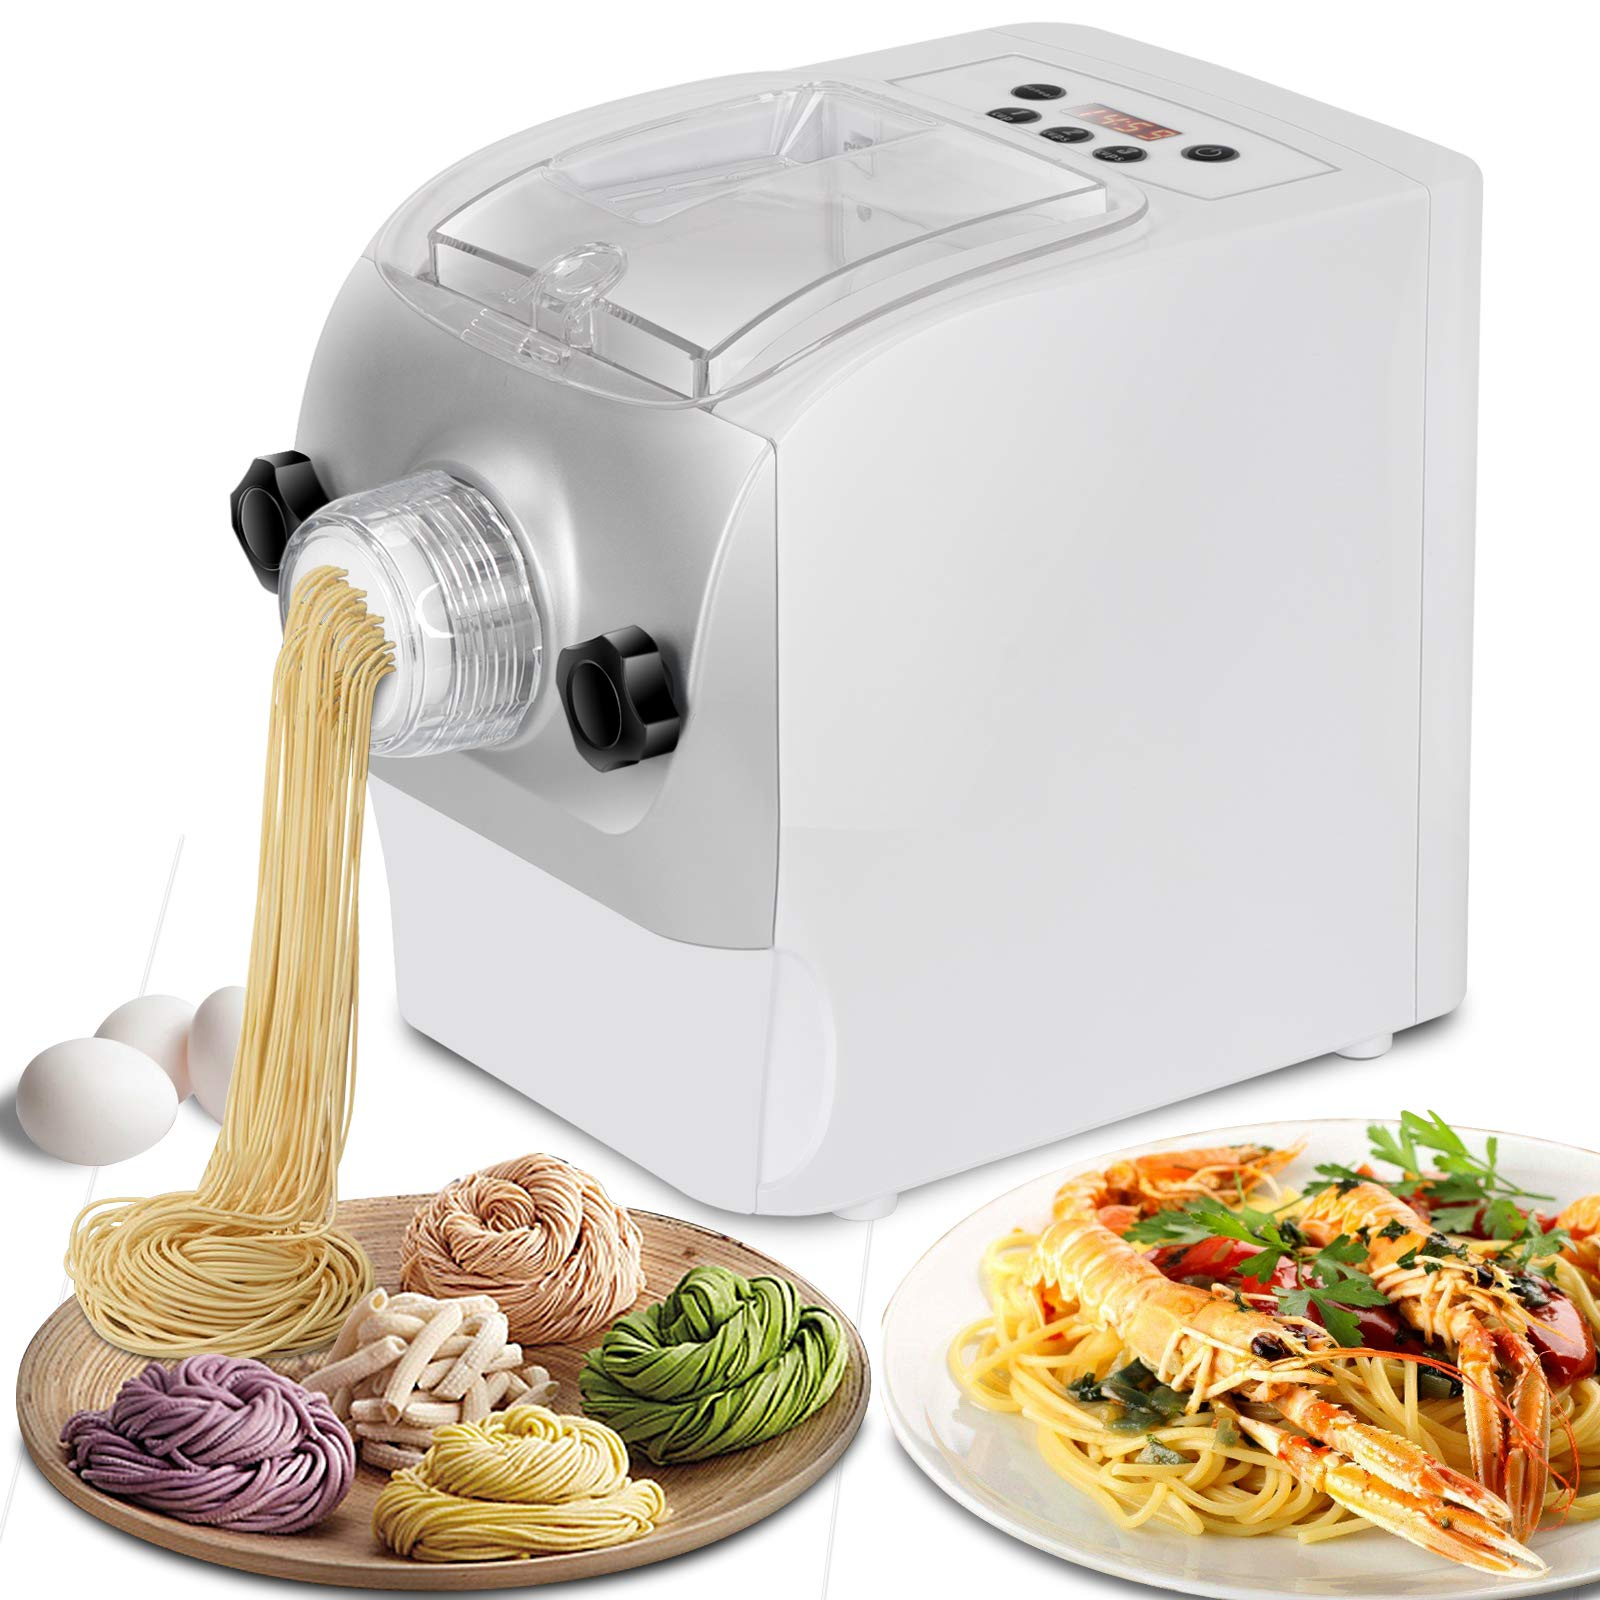 Oteymart Electric Pasta and Noodle Maker Automatic Noodle Making Machine Multi-functional with 8 Shape Options by Oteymart